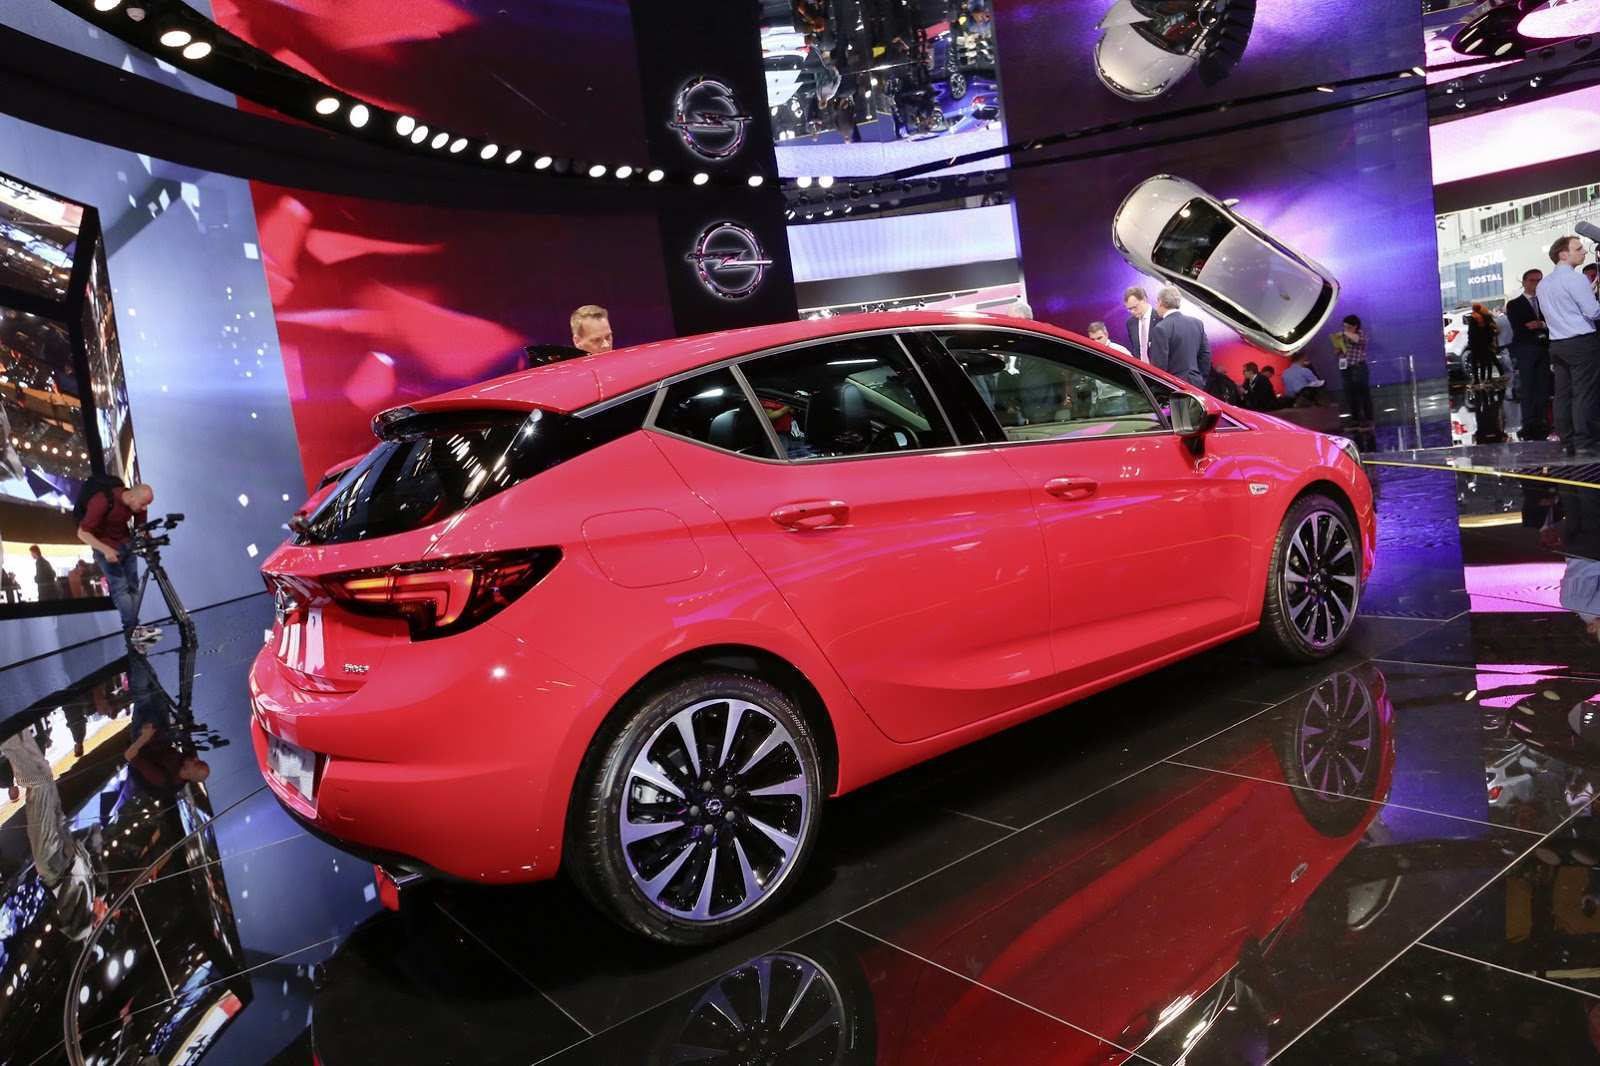 14 All New Opel Astra 2020 Interior Images with Opel Astra 2020 Interior